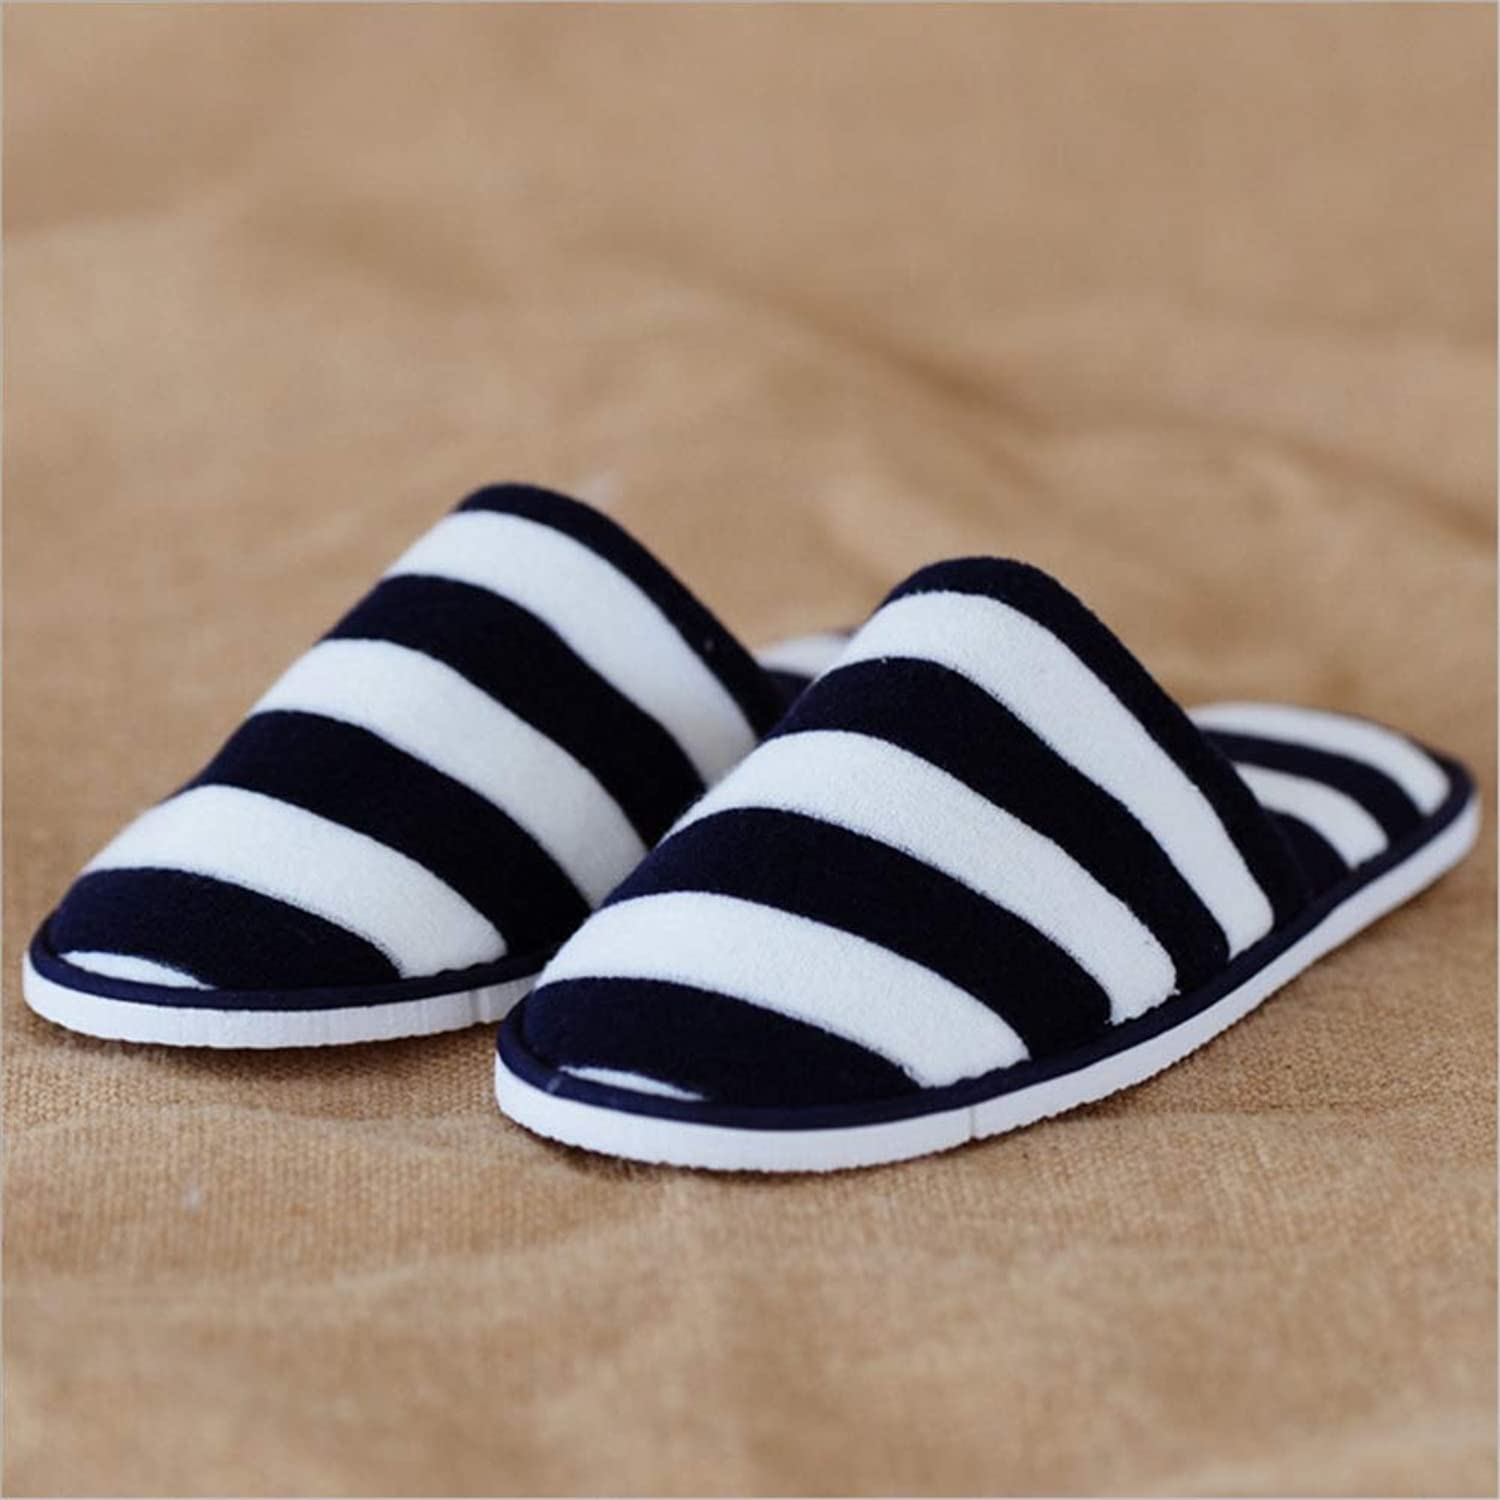 5 Pairs Non-Disposable Slippers- for Men and Women - Great for Home, Hotel, Spa, Guest, Nail Salon   Closed Toe Unisex Slippers, 38-43